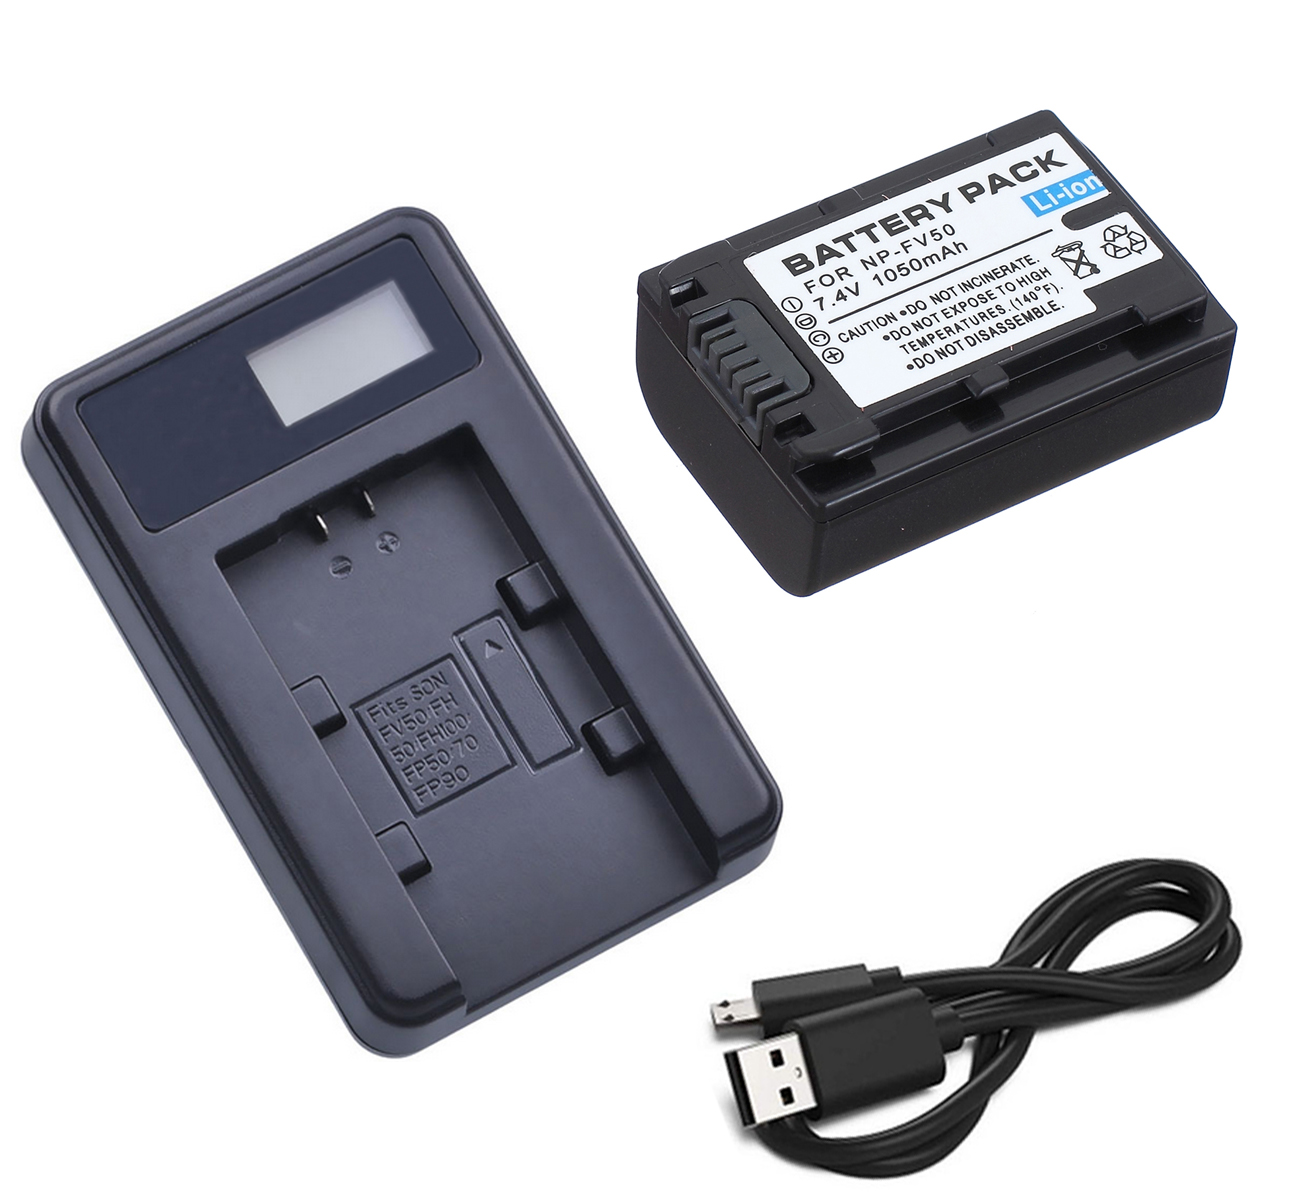 HDR-CX510E HDR-CX535E Handycam Camcorder HDR-CX530E HDR-CX530 HDR-CX535 Dual Battery USB Charger for Sony HDR-CX510